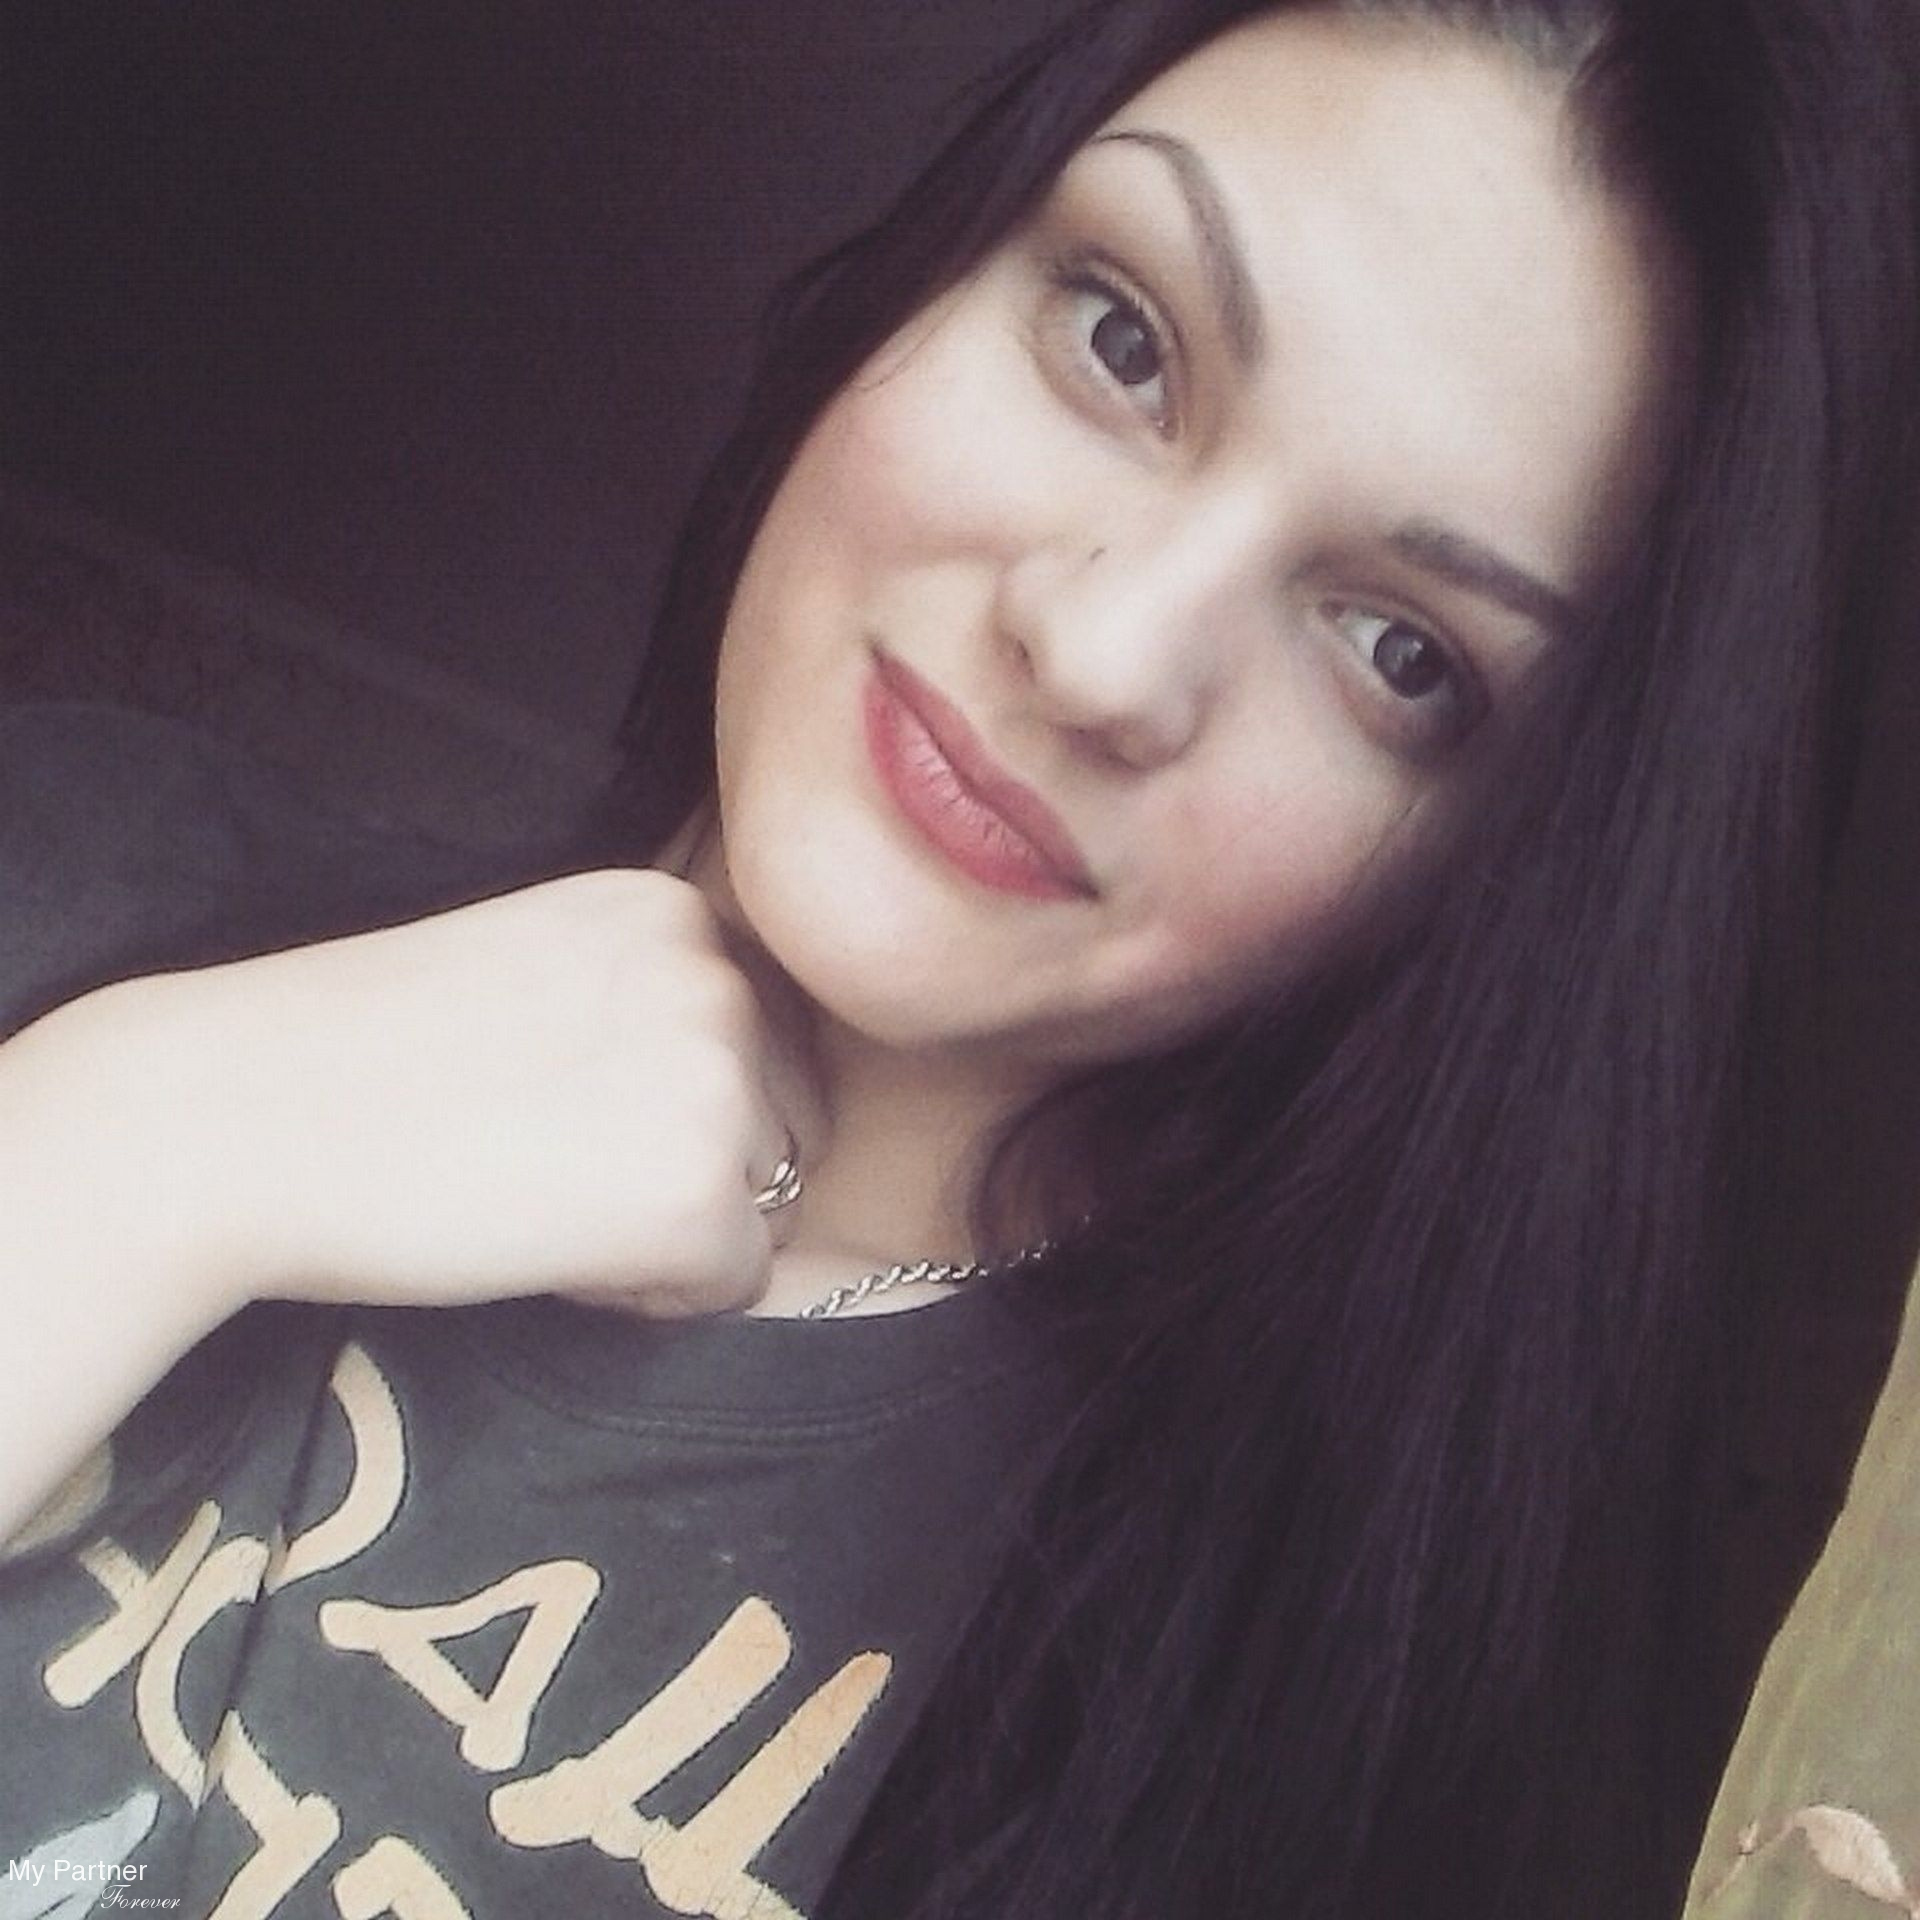 ukraine dating massasje damer